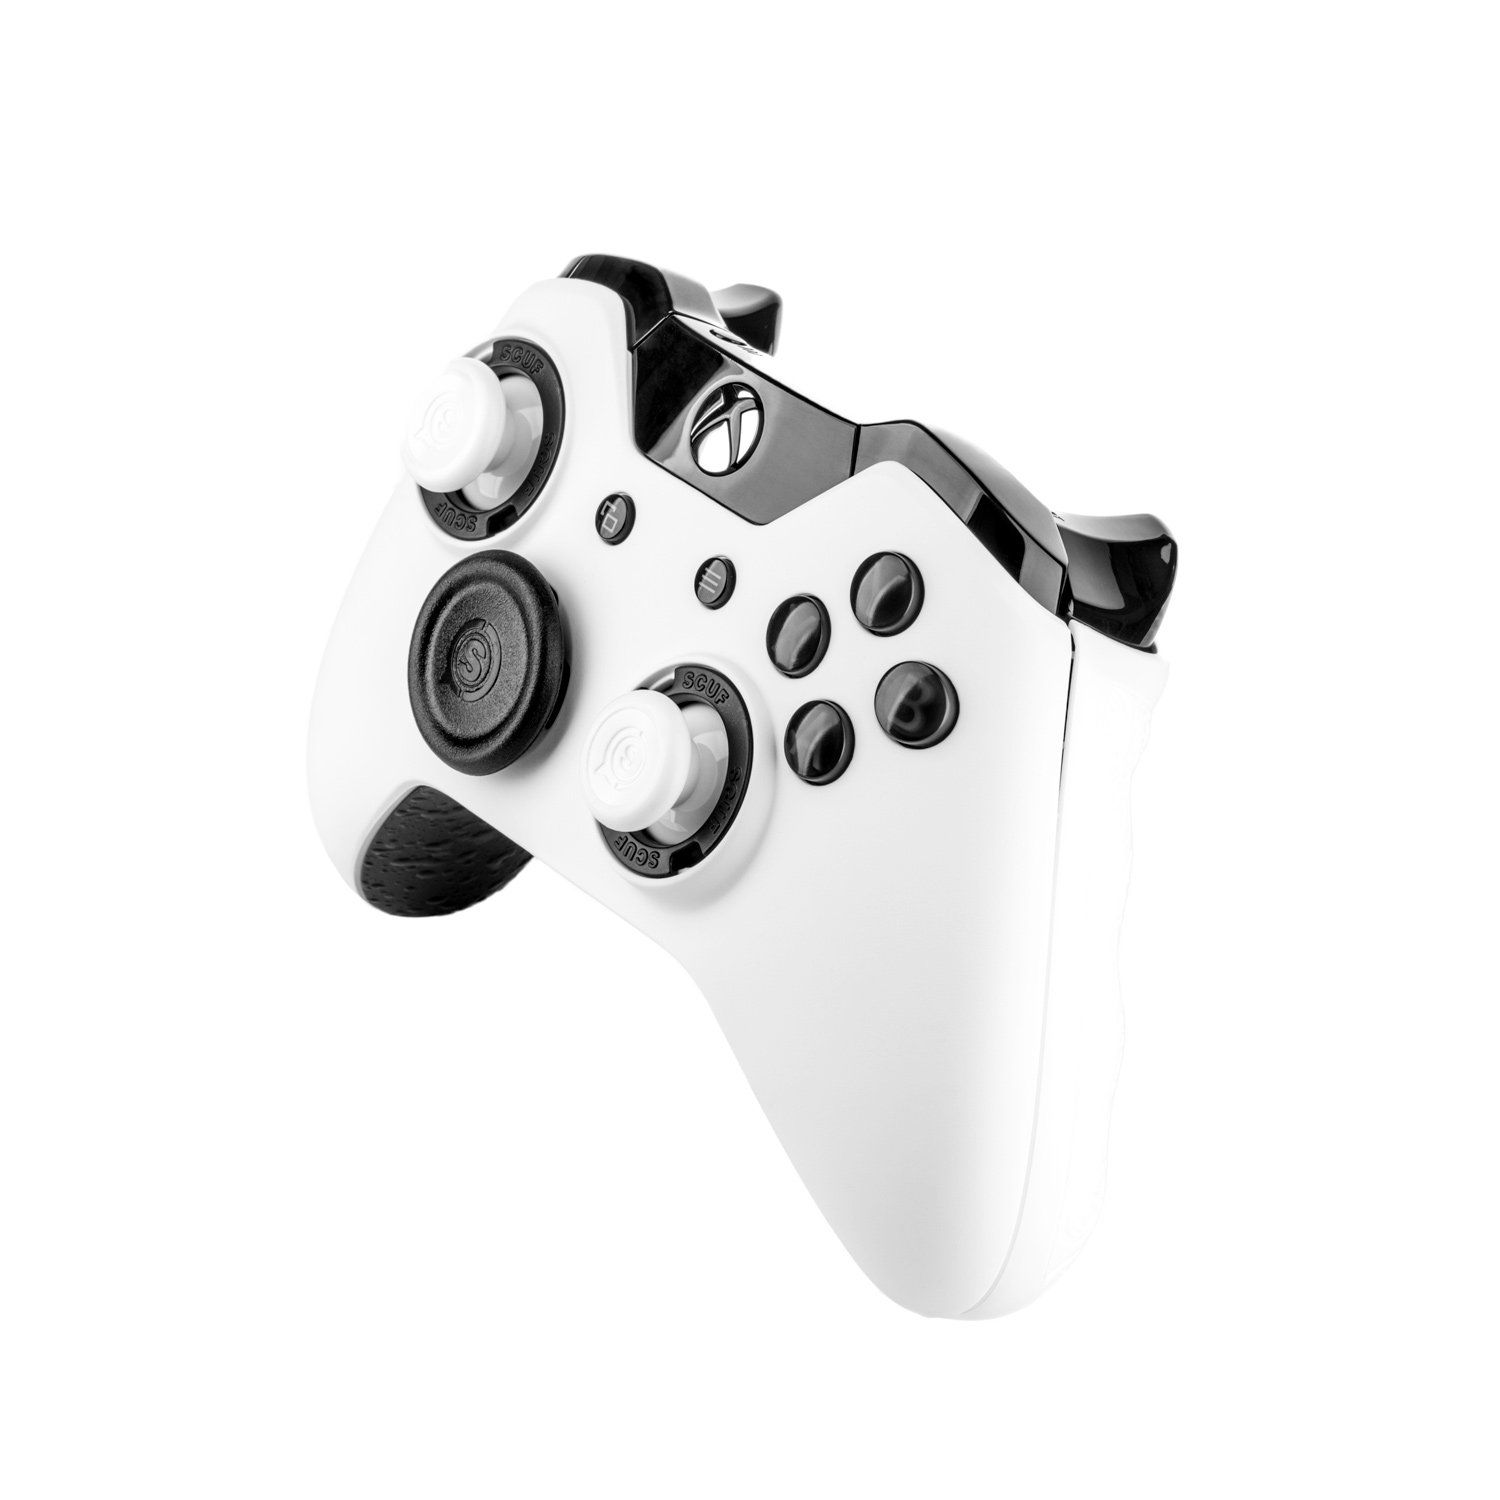 SCUF Gaming Infinity1 Video Game Controller for Xbox One and PC, White